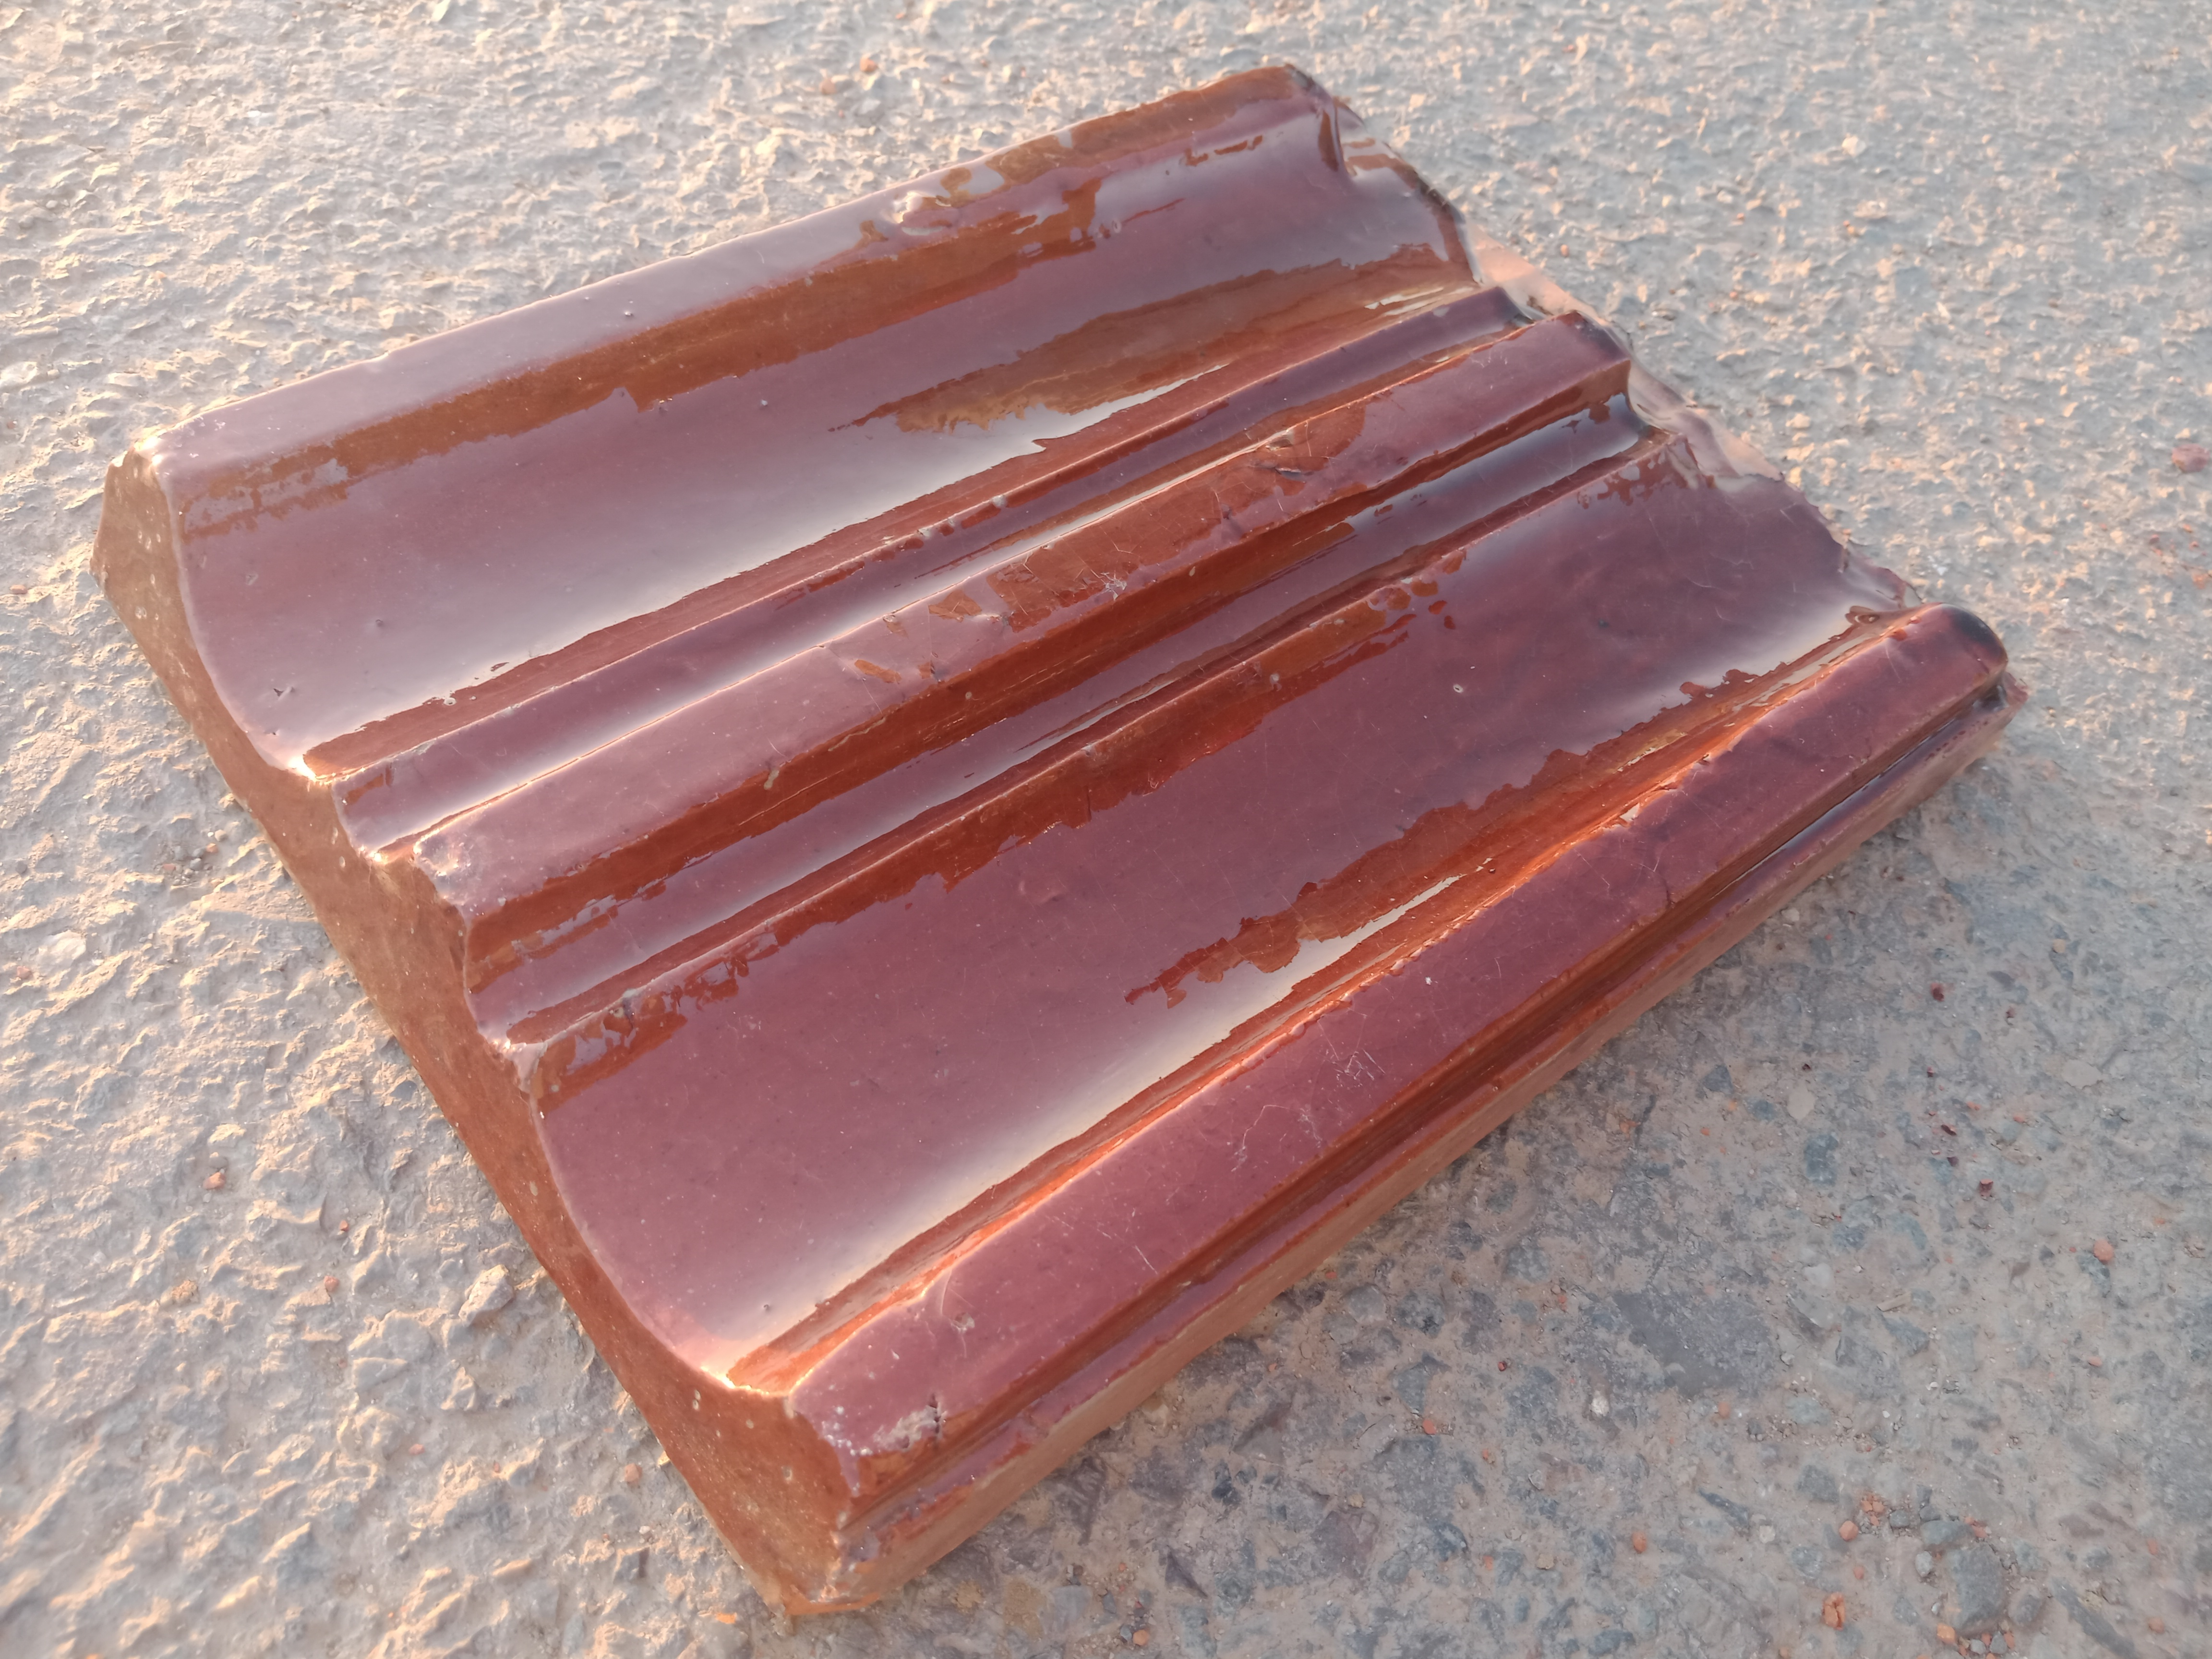 9 Disco Clay Roof Shingles Glazed Ceramic Tiles Clay Roof Tiles in Pakistan Images.